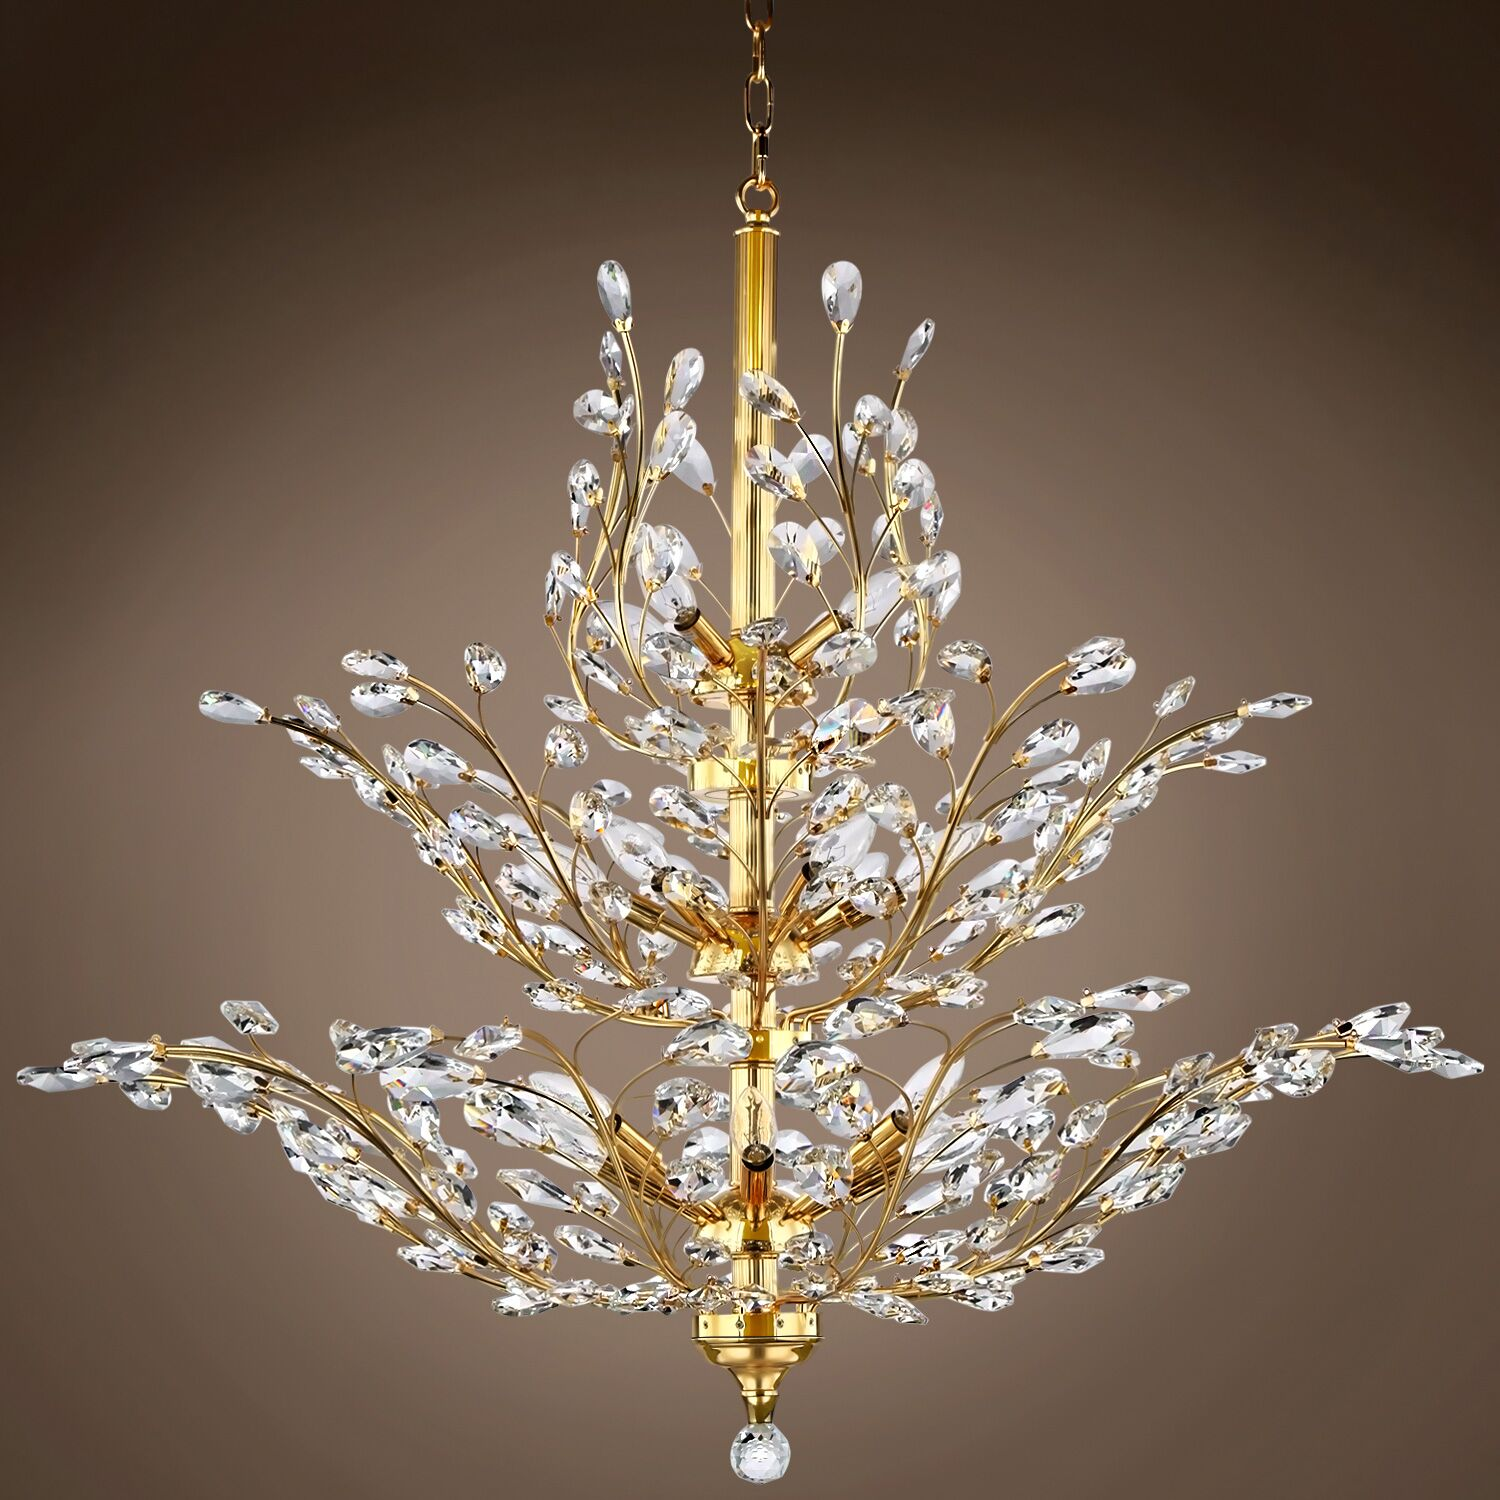 Mendiola 18-Light Chandelier Crystal Grade: European, Crystal Color: Golden Teak, Bulb Type: LED